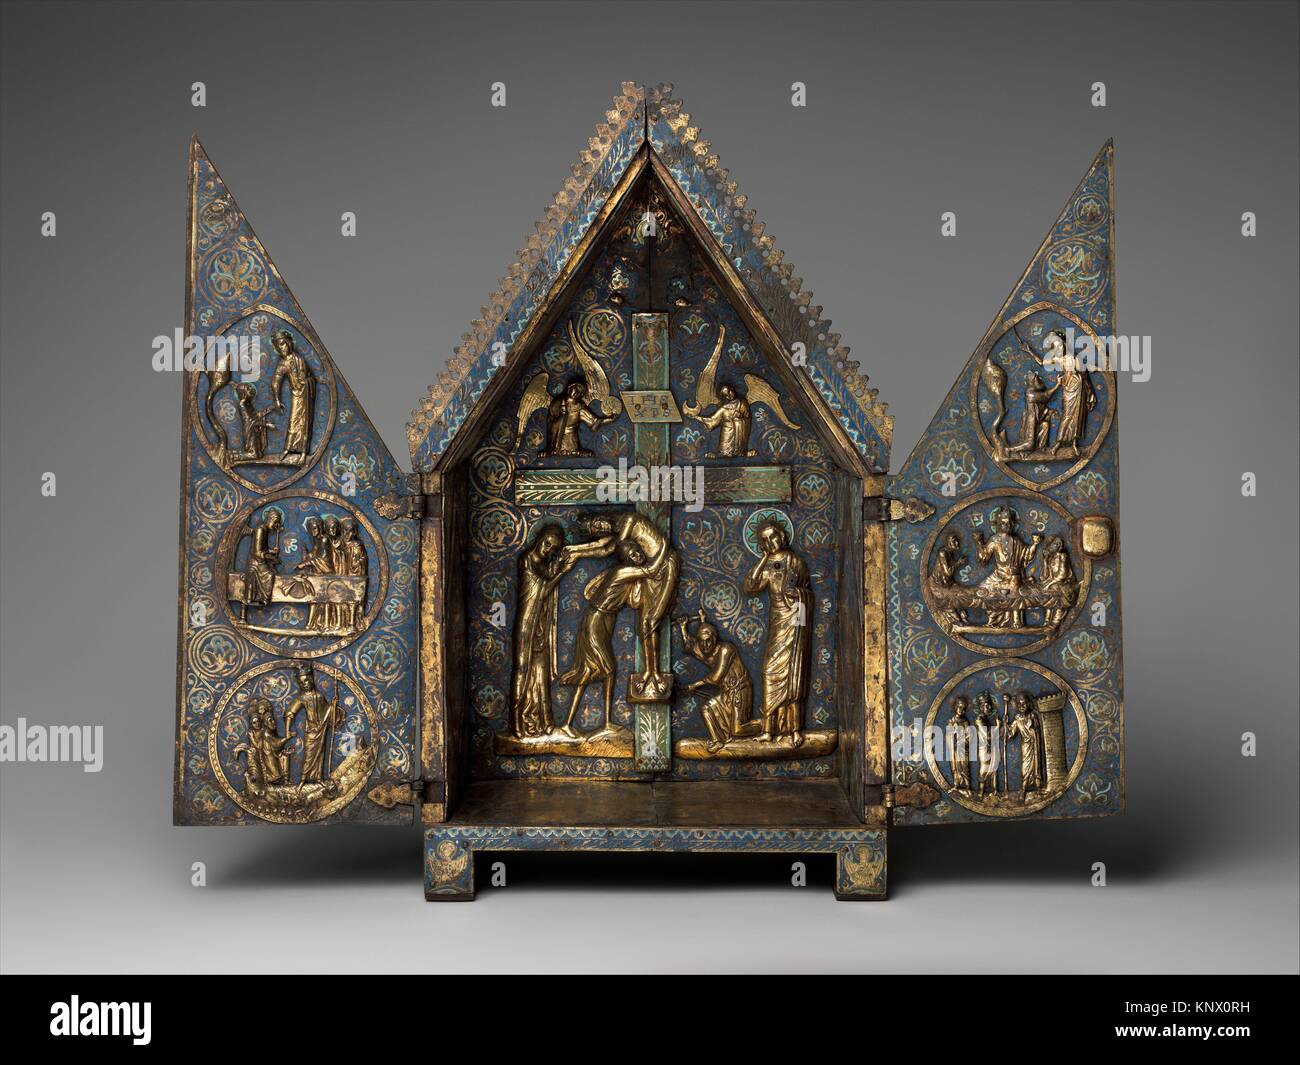 Tabernacle of Cherves. Date: ca. 1220-1230; Geography: Made in Limoges, France; Culture: French; Medium: Copper - Stock Image